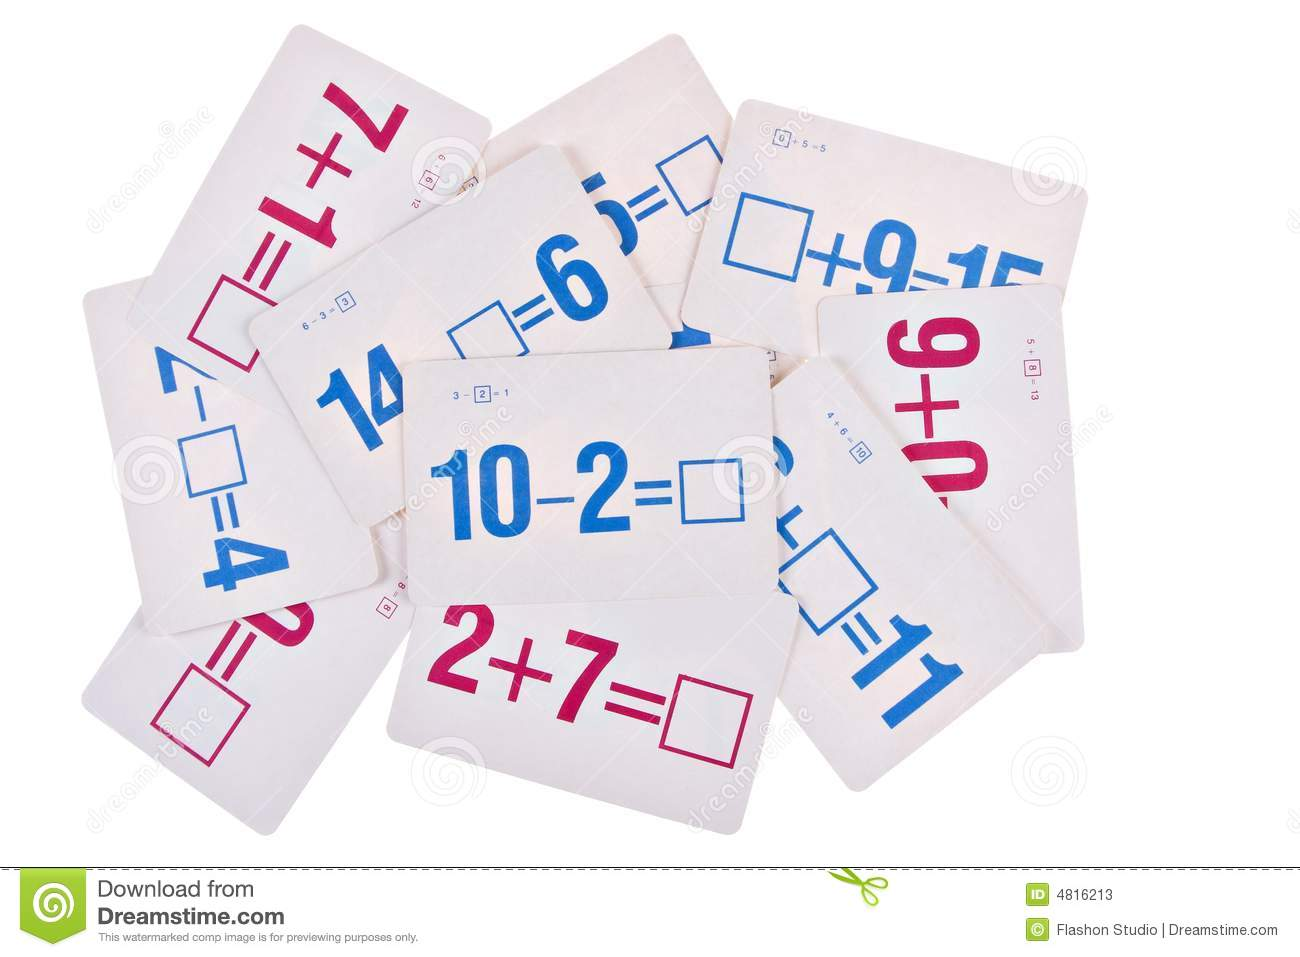 Worksheet Math Flash Cards stack of math flash card stock photos image 4816213 card